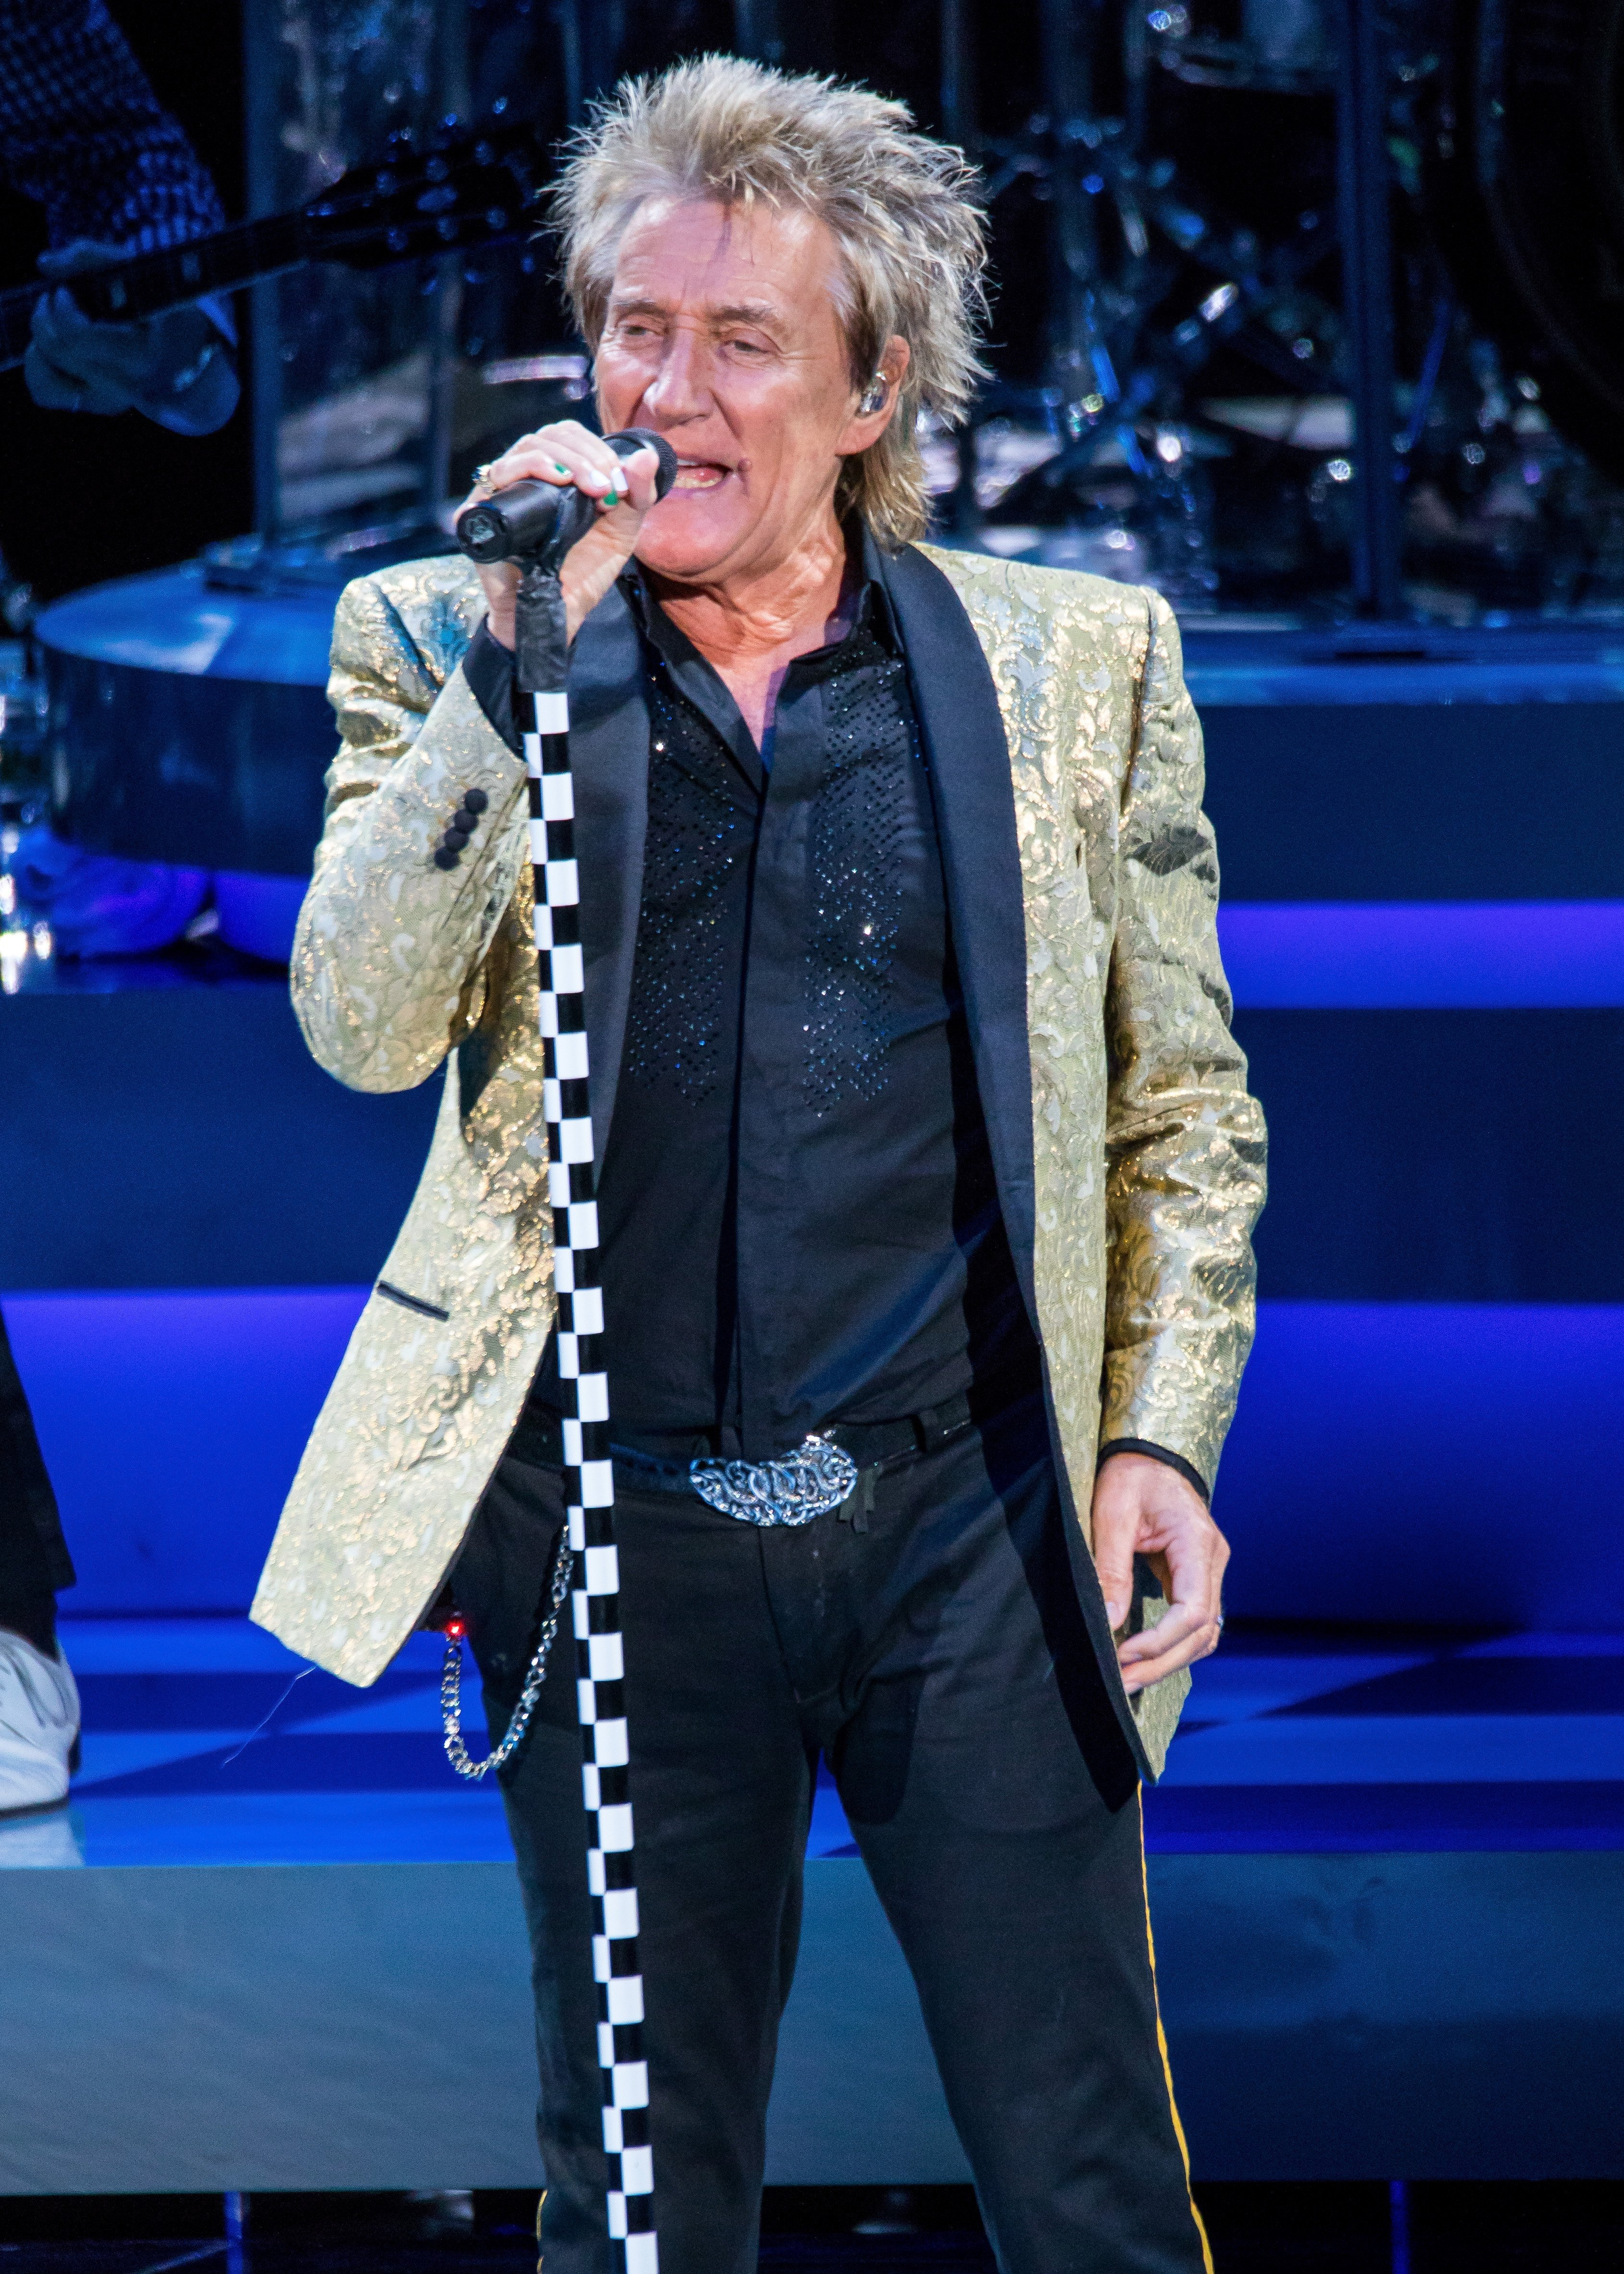 Rod Stewart performs at DTE Energy Music Theater on August 1, 2017 in Clarkston, Michigan | Photo: GettyImages